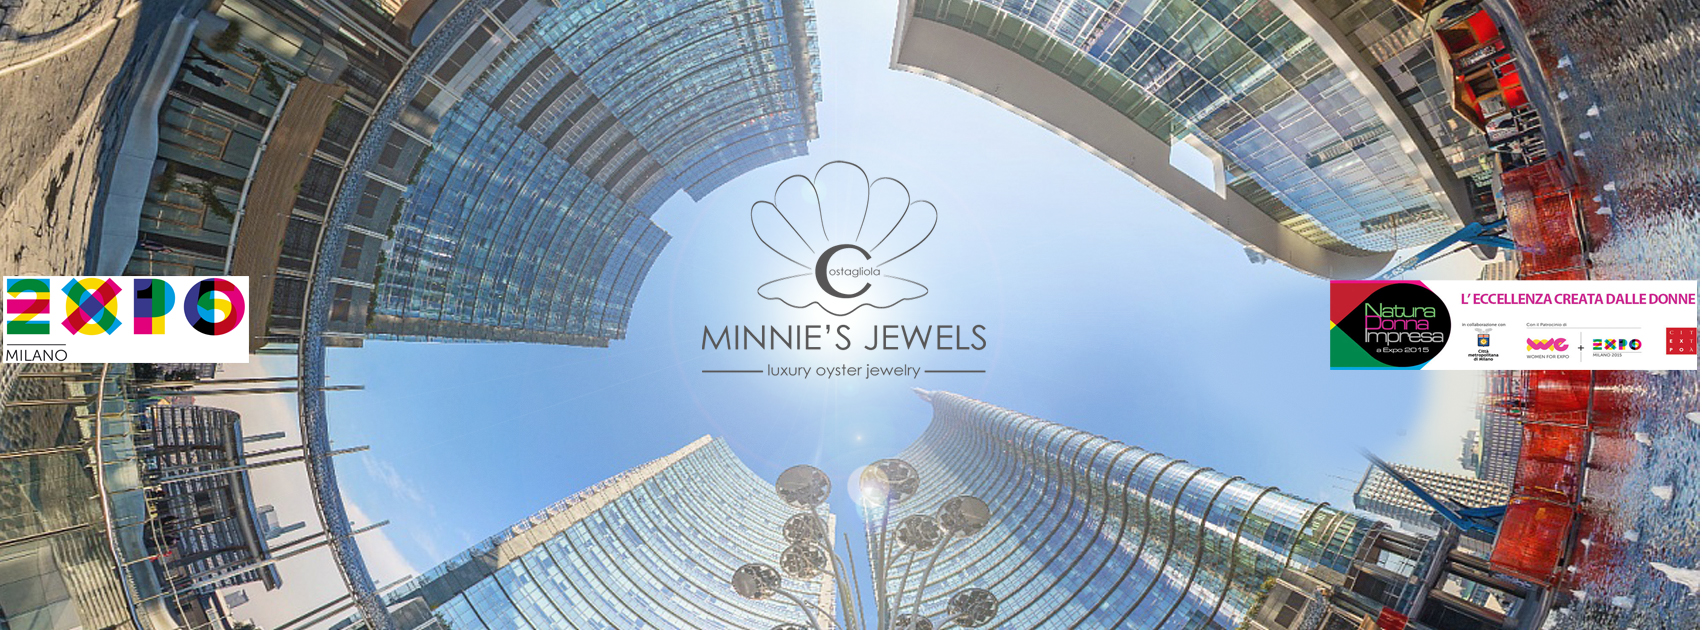 Minnies Jewels sbarca in Expò